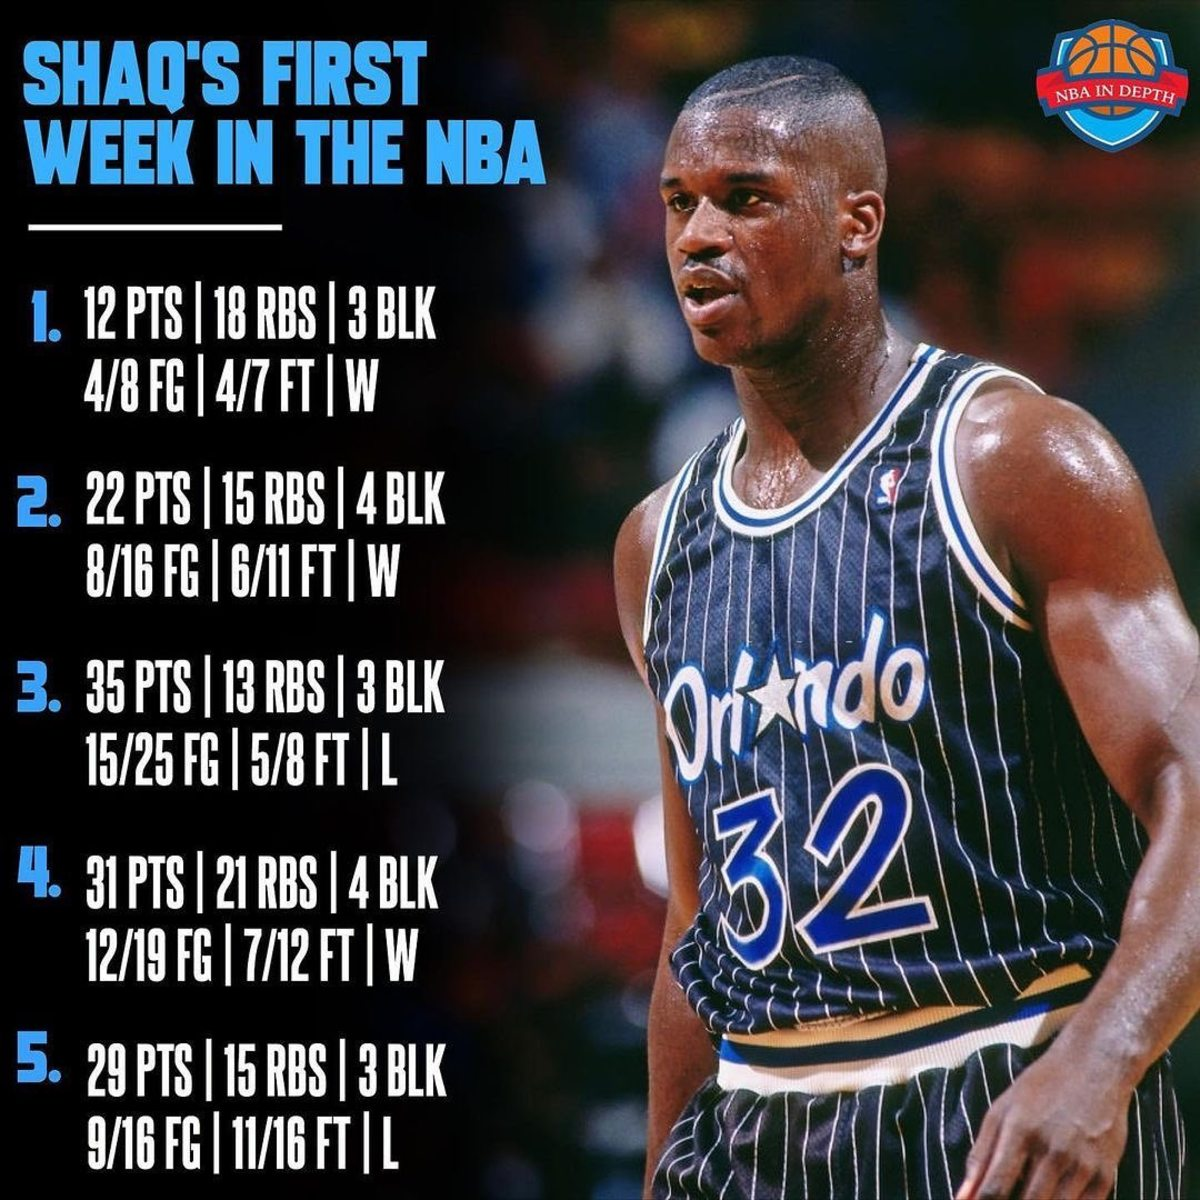 Shaquille O'Neal Absolutely Dominated In His First Week In The NBA: 25.8 PPG, 16.4 RPG, 3.4 BPG, 57.1 FG%